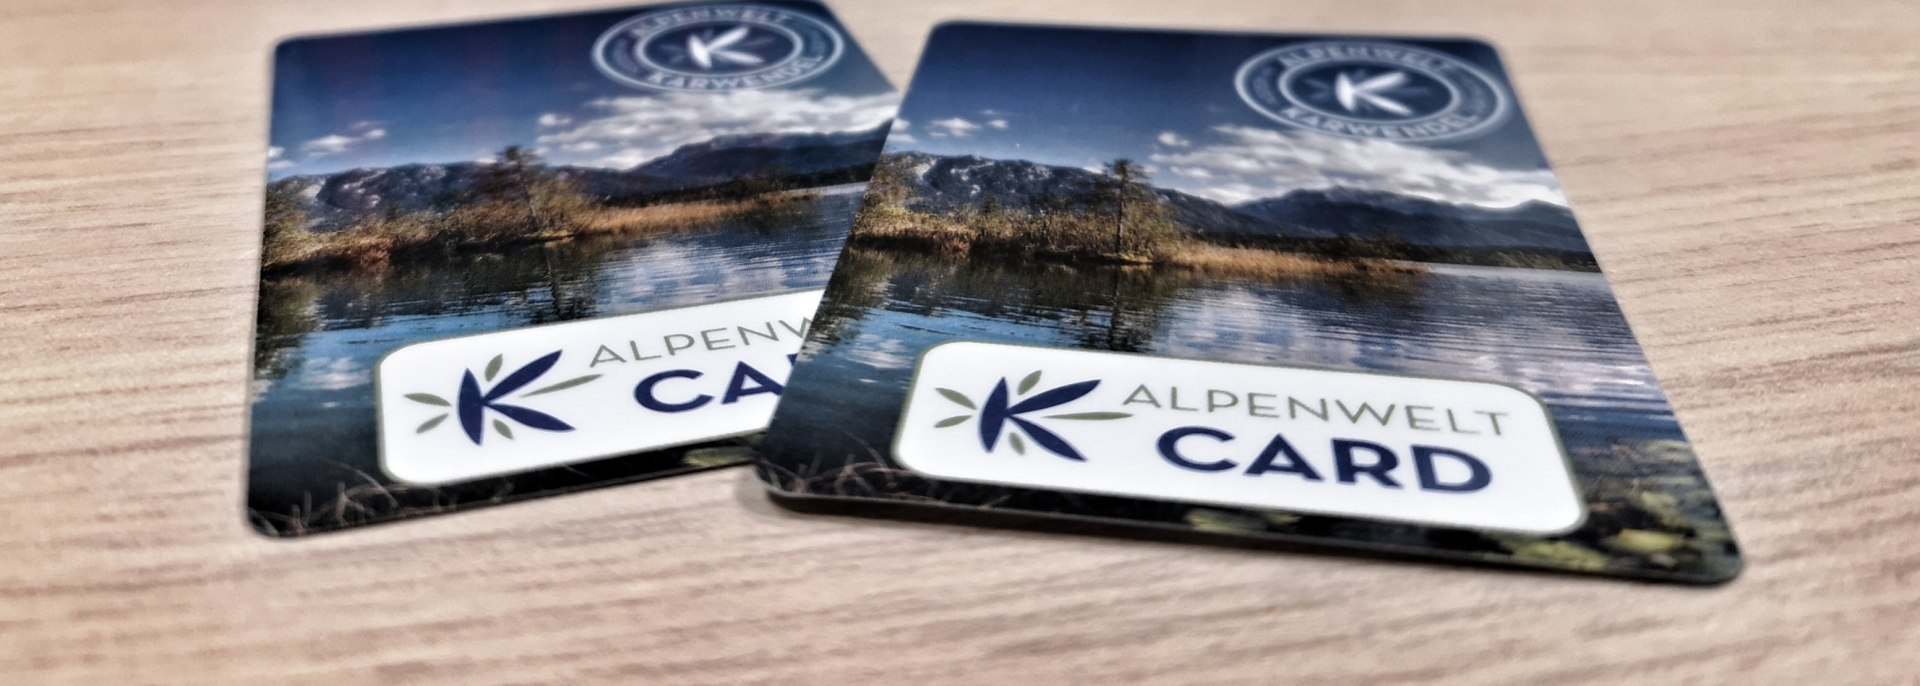 With the AlpenweltCard guest card you get many discounts and free services for your holiday in Bavaria. AlpenweltCard - , © Andreas Karner